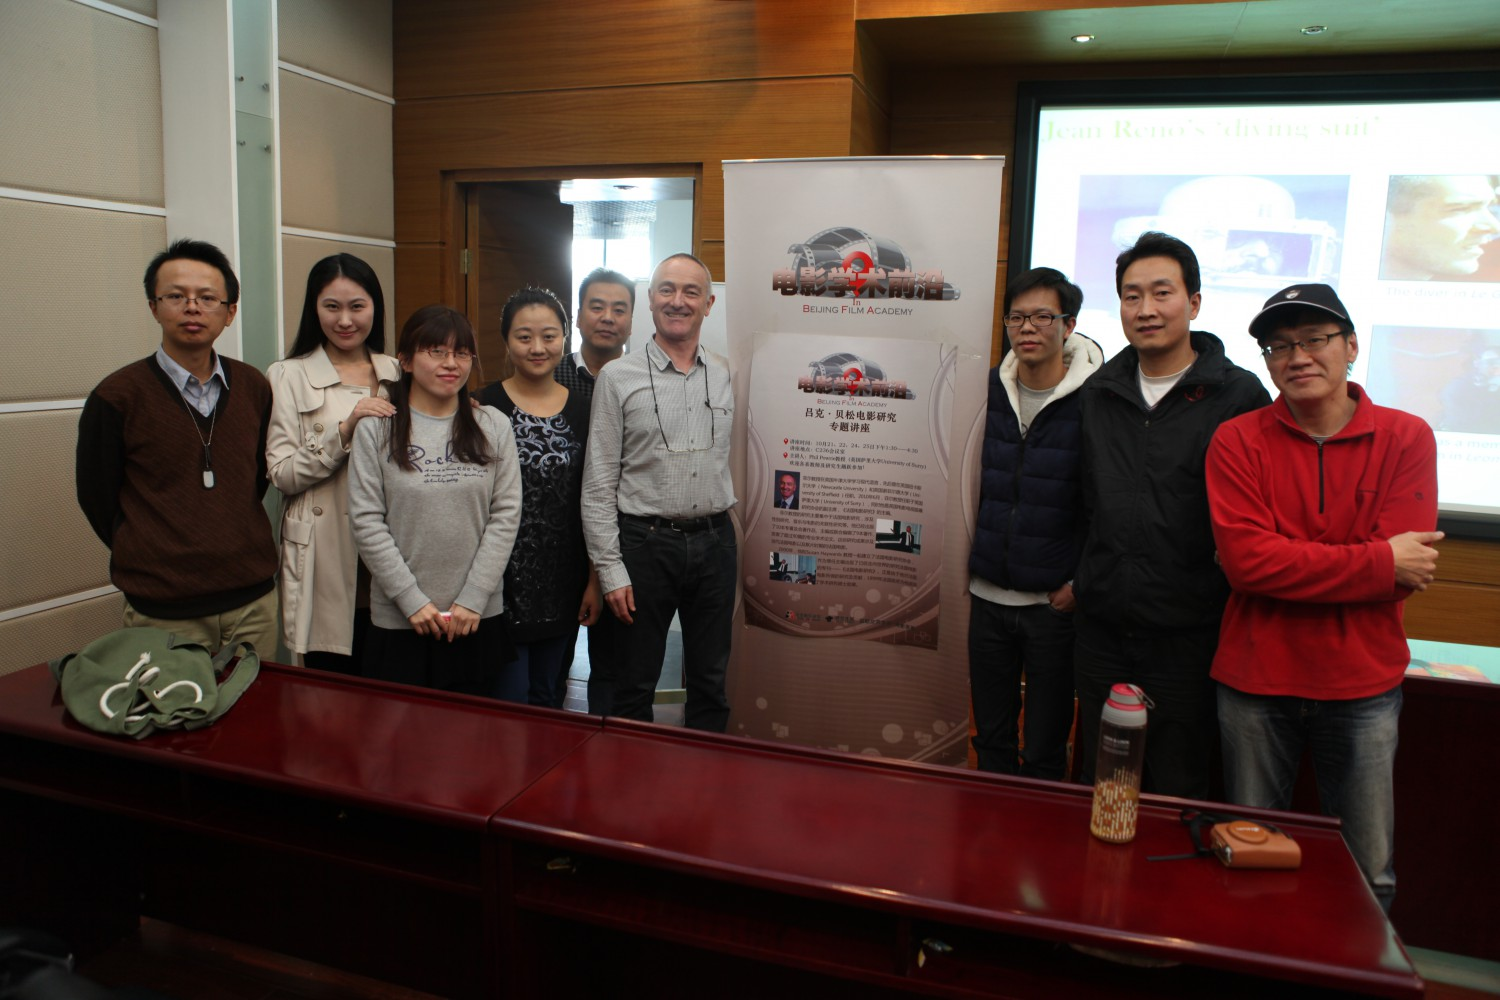 With the PhD class at the Beijing Film Academy 2013